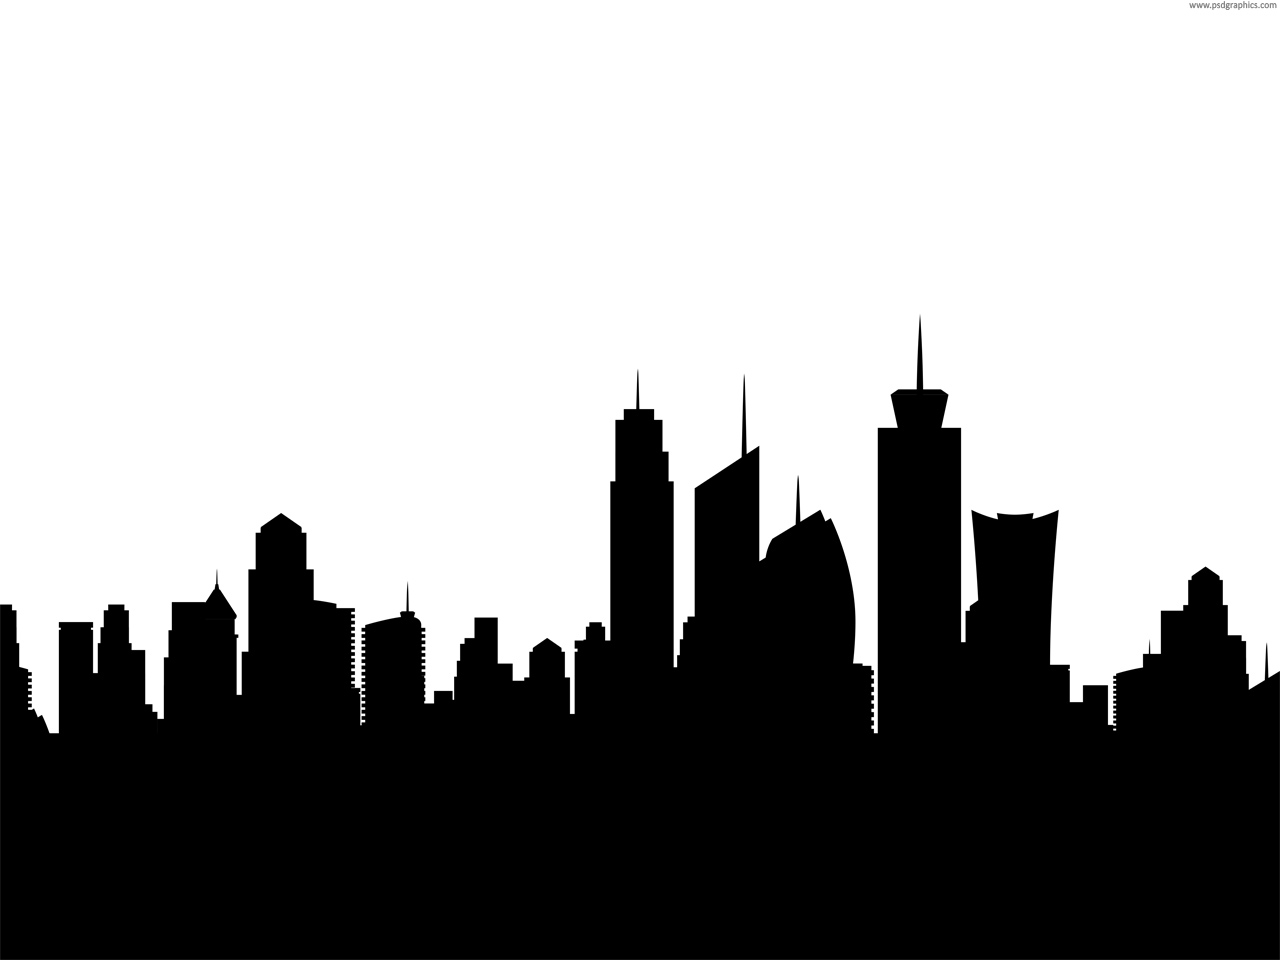 Silhouette nyc skyline at getdrawings free for personal use 1280x960 city skyline silhouette psdgraphics thecheapjerseys Image collections